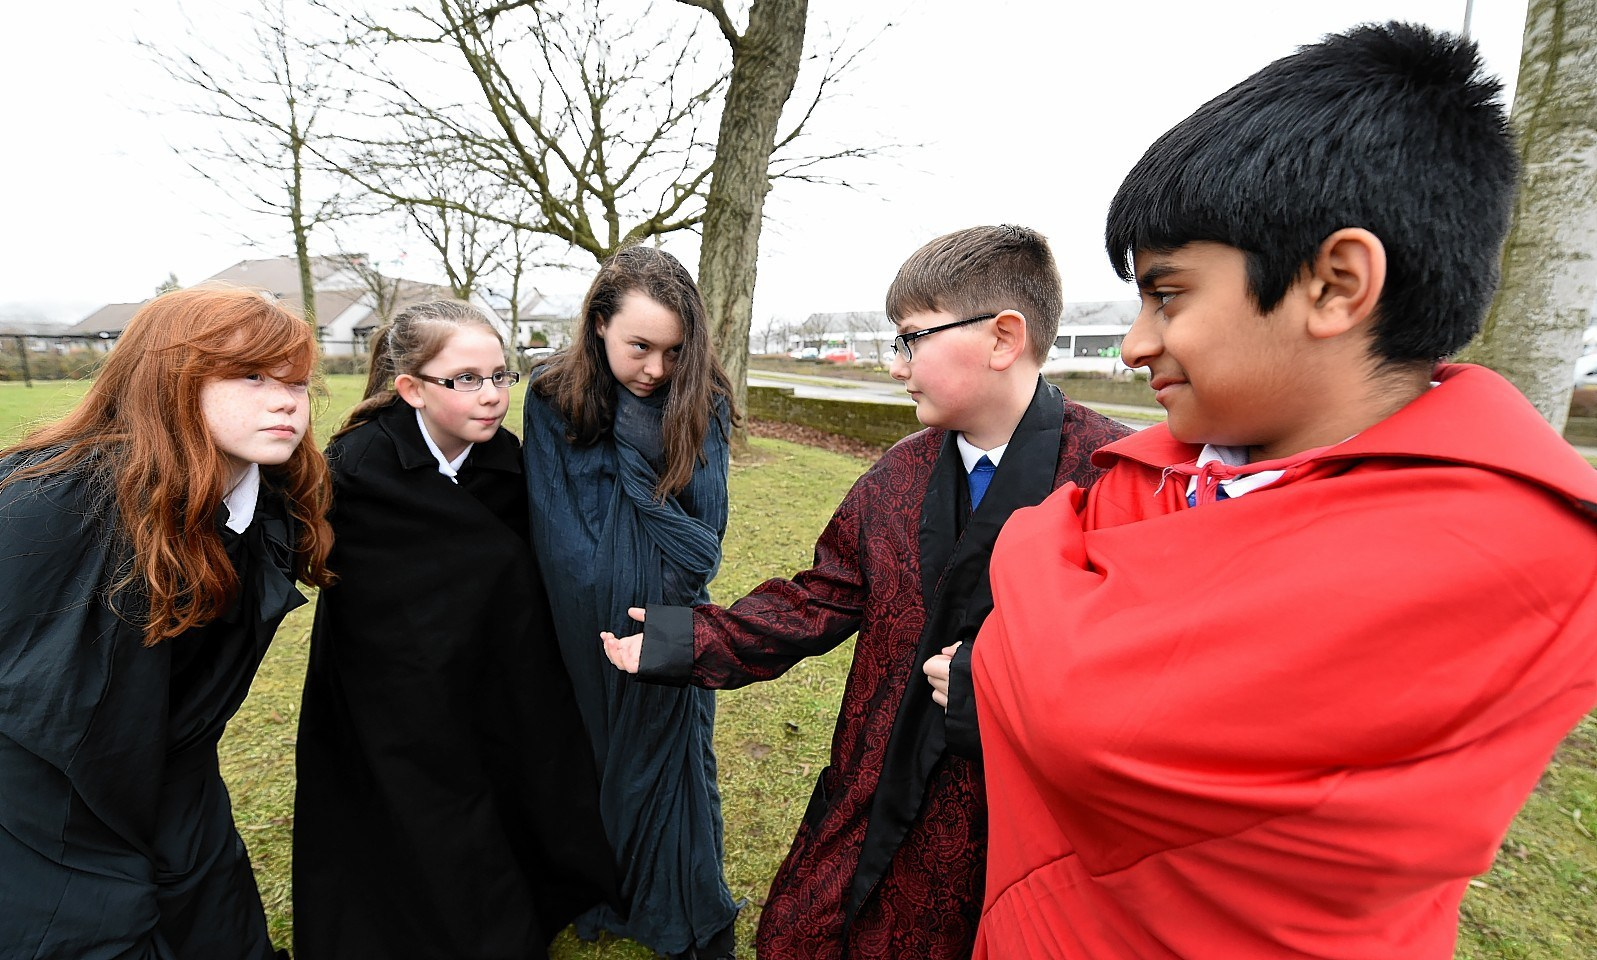 Pupils played out the first act of Macbeth. Pupils Talie Gordon, Kayla Sinclair, Zoe Williamson (Witches) Nathan Landbor (Macbeth) and Adam Shafi (Banquo)